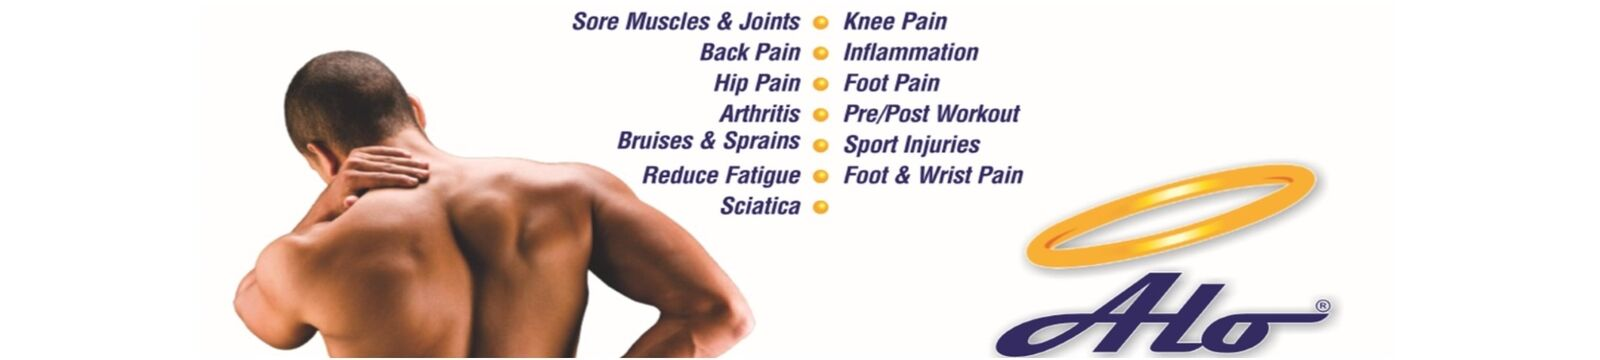 alotherapysolutions